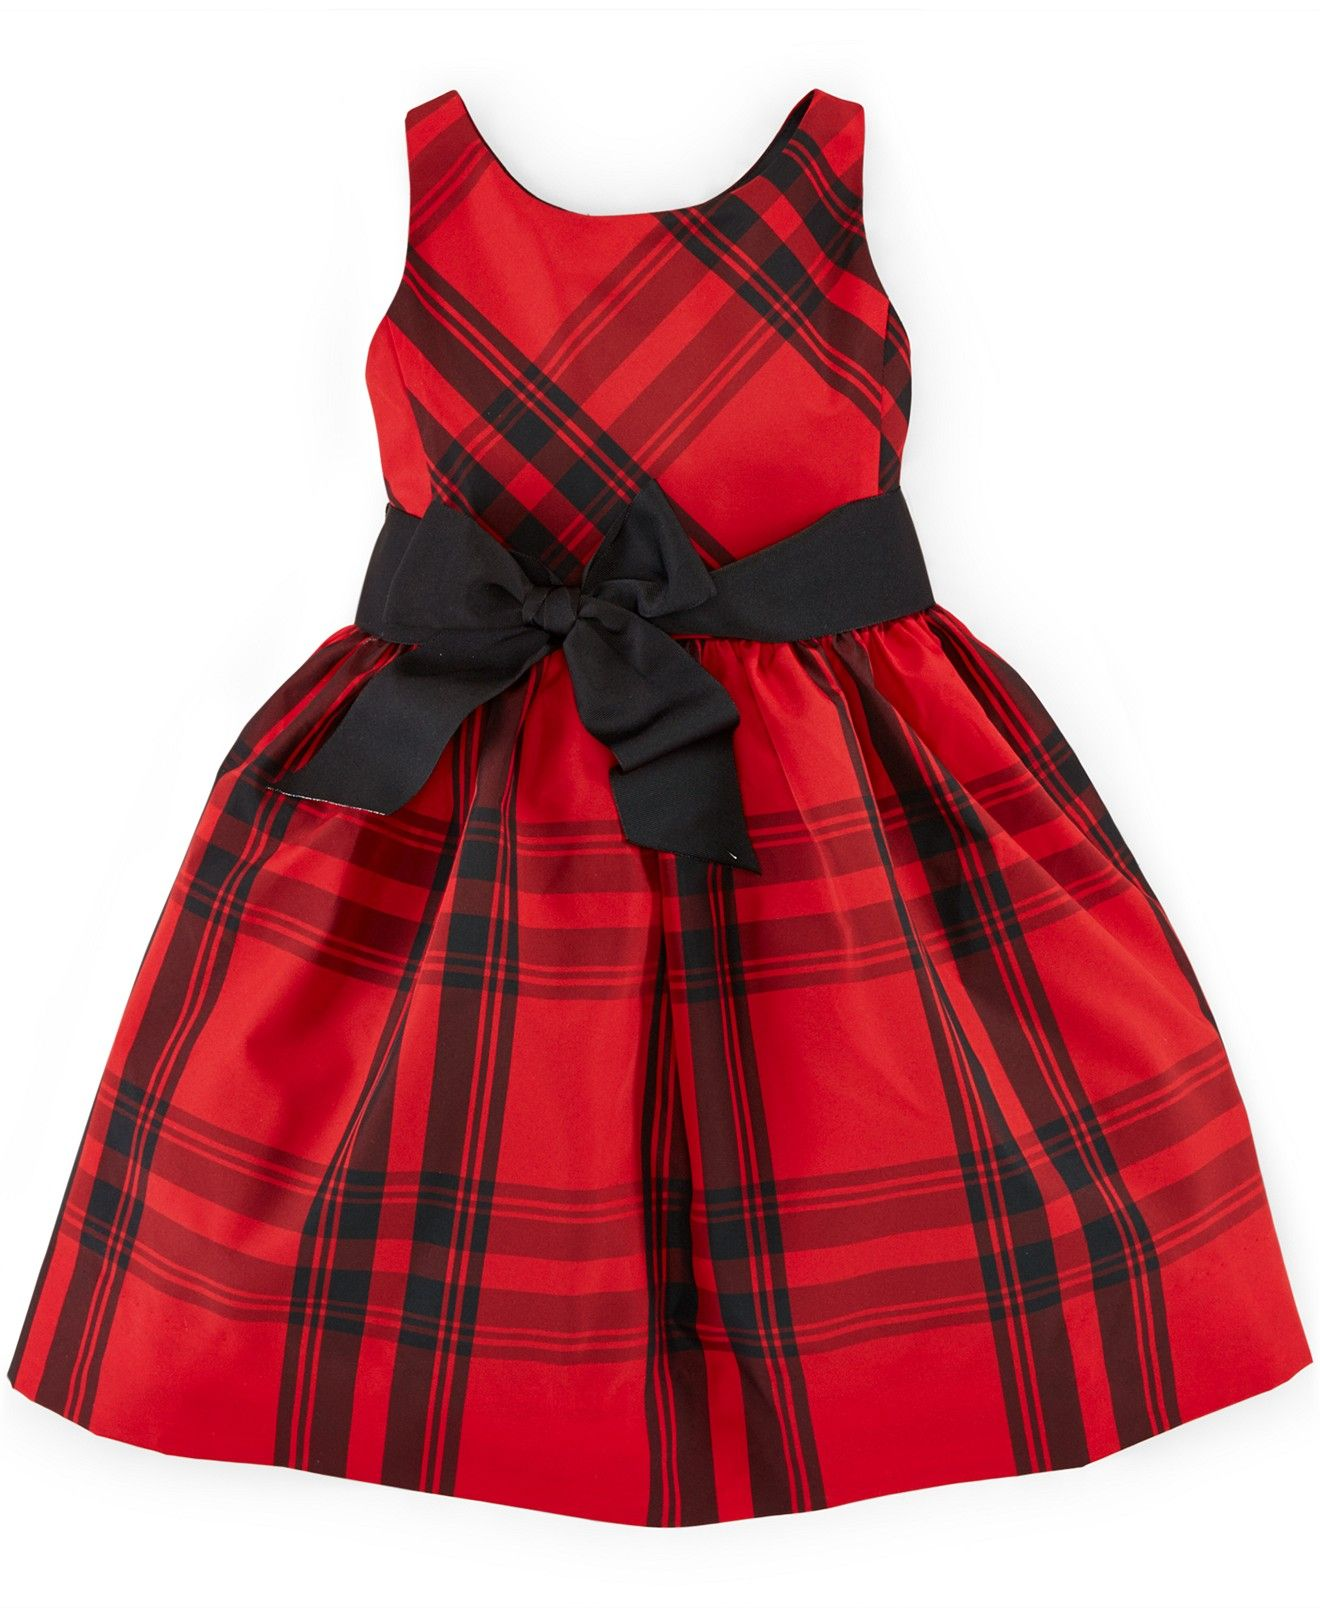 98b598380 Ralph Lauren Little Girls' Plaid Fit-And-Flare Dress - Dresses - Kids & Baby  - Macy's